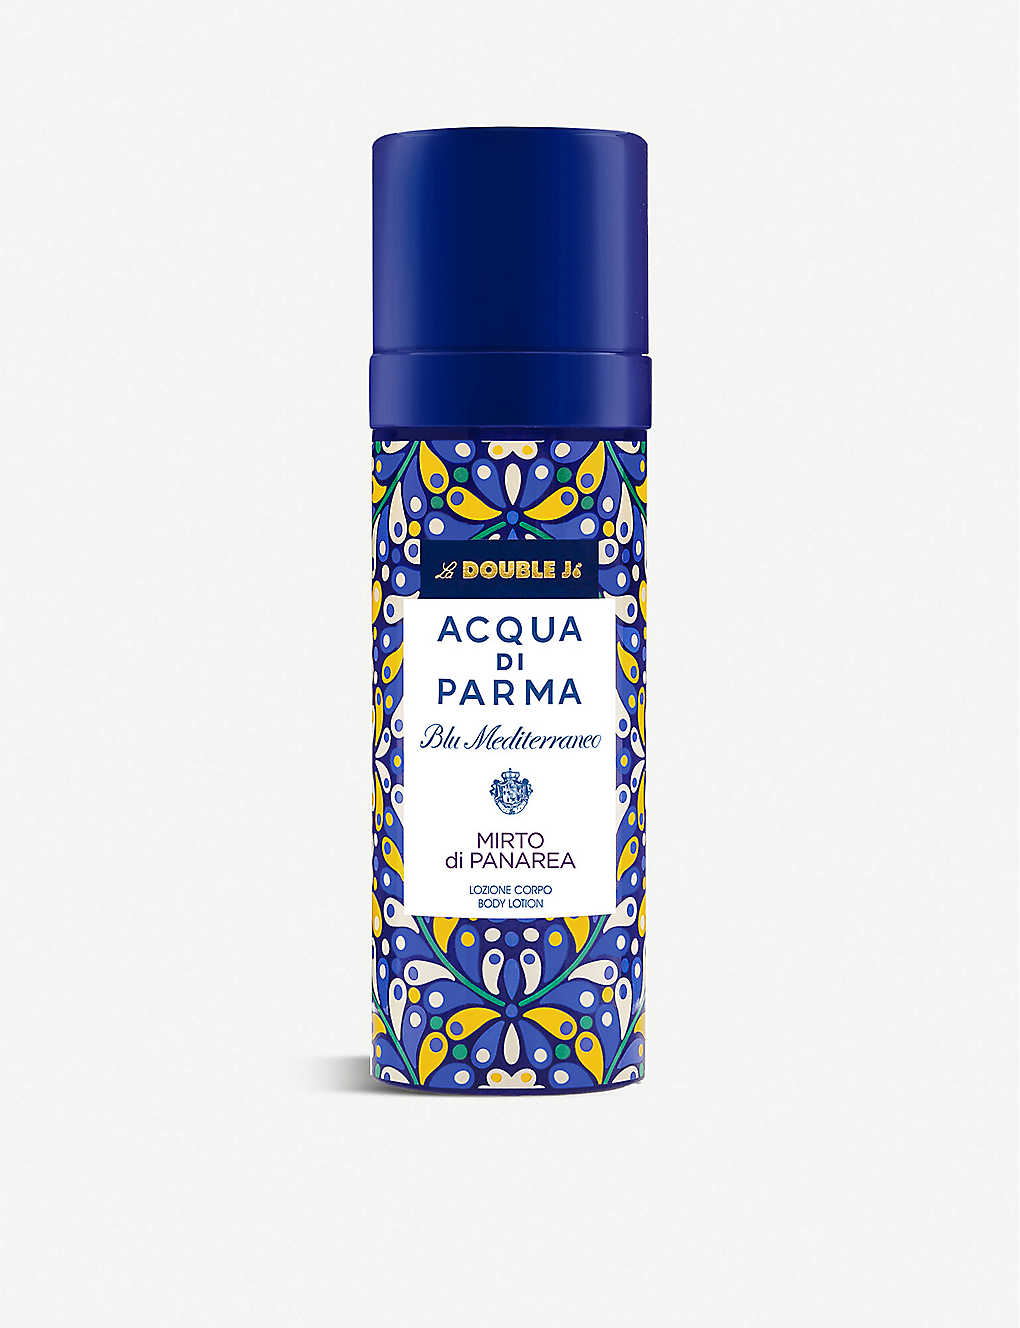 ACQUA DI PARMA: Blu Mediterraneo Mirto di Panarea body lotion 150ml